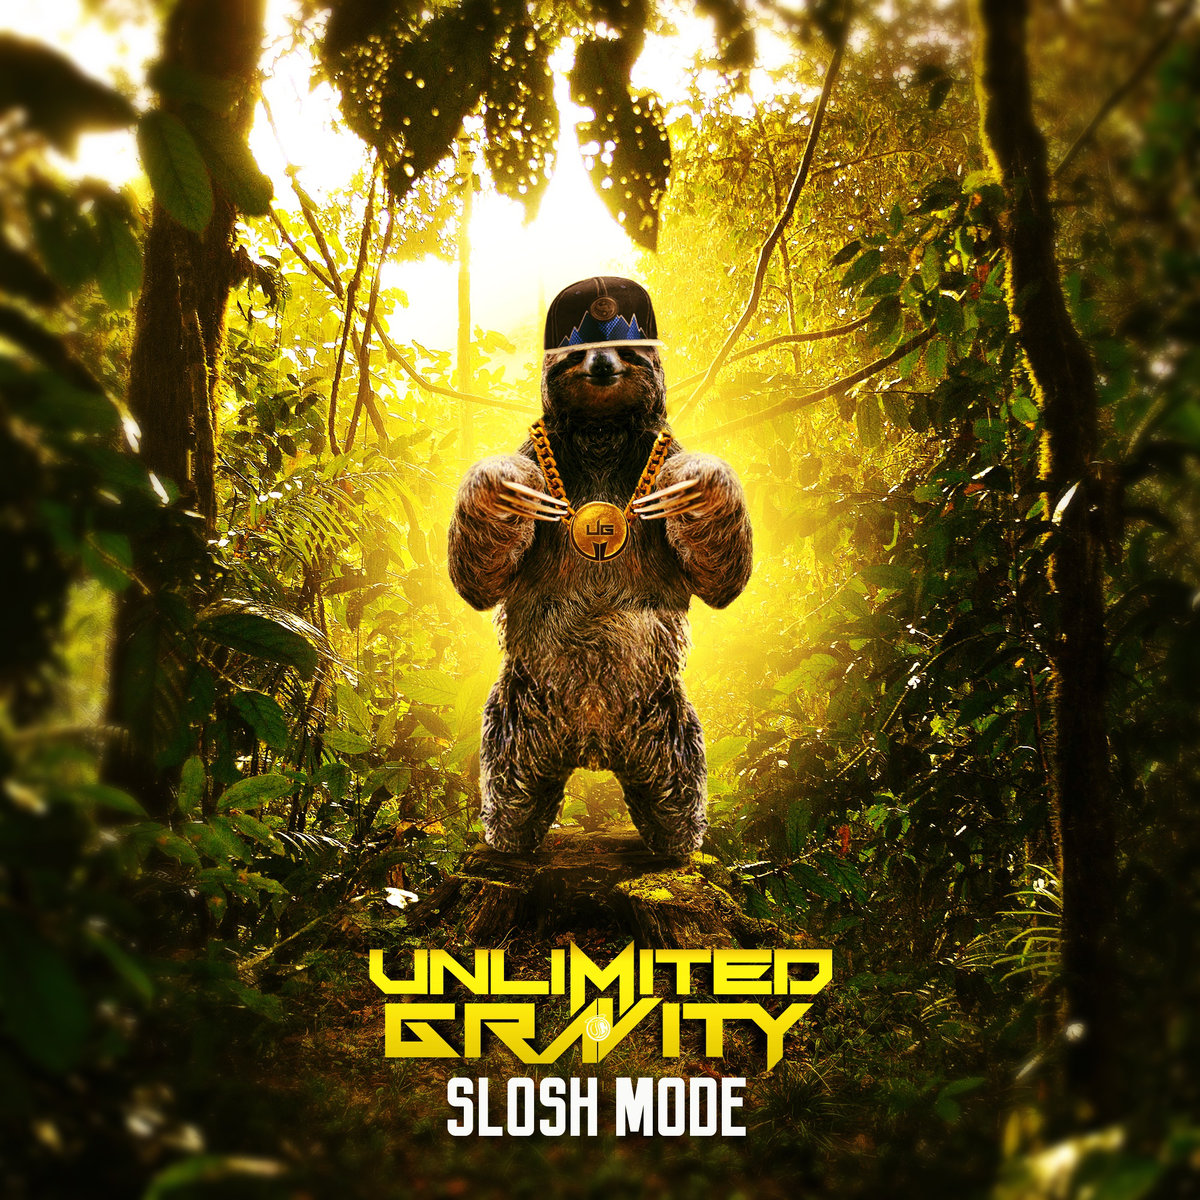 Unlimited Gravity - Squish Mode @ 'Slosh Mode' album (Austin)